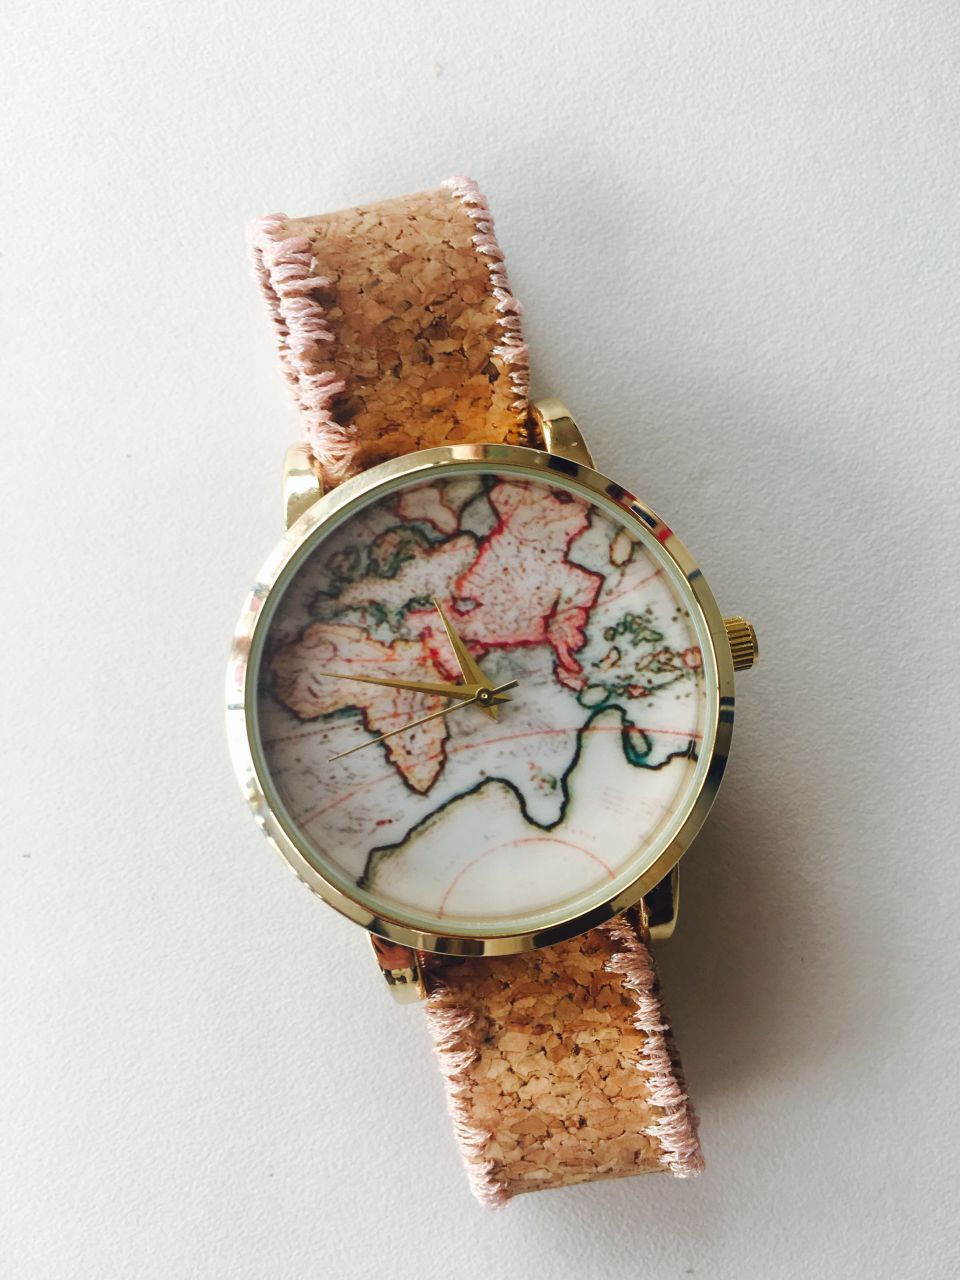 Diy watch world map embroidered cork bracelet perles co dmc thread embroidery on diy watch bracelet in cork gumiabroncs Gallery